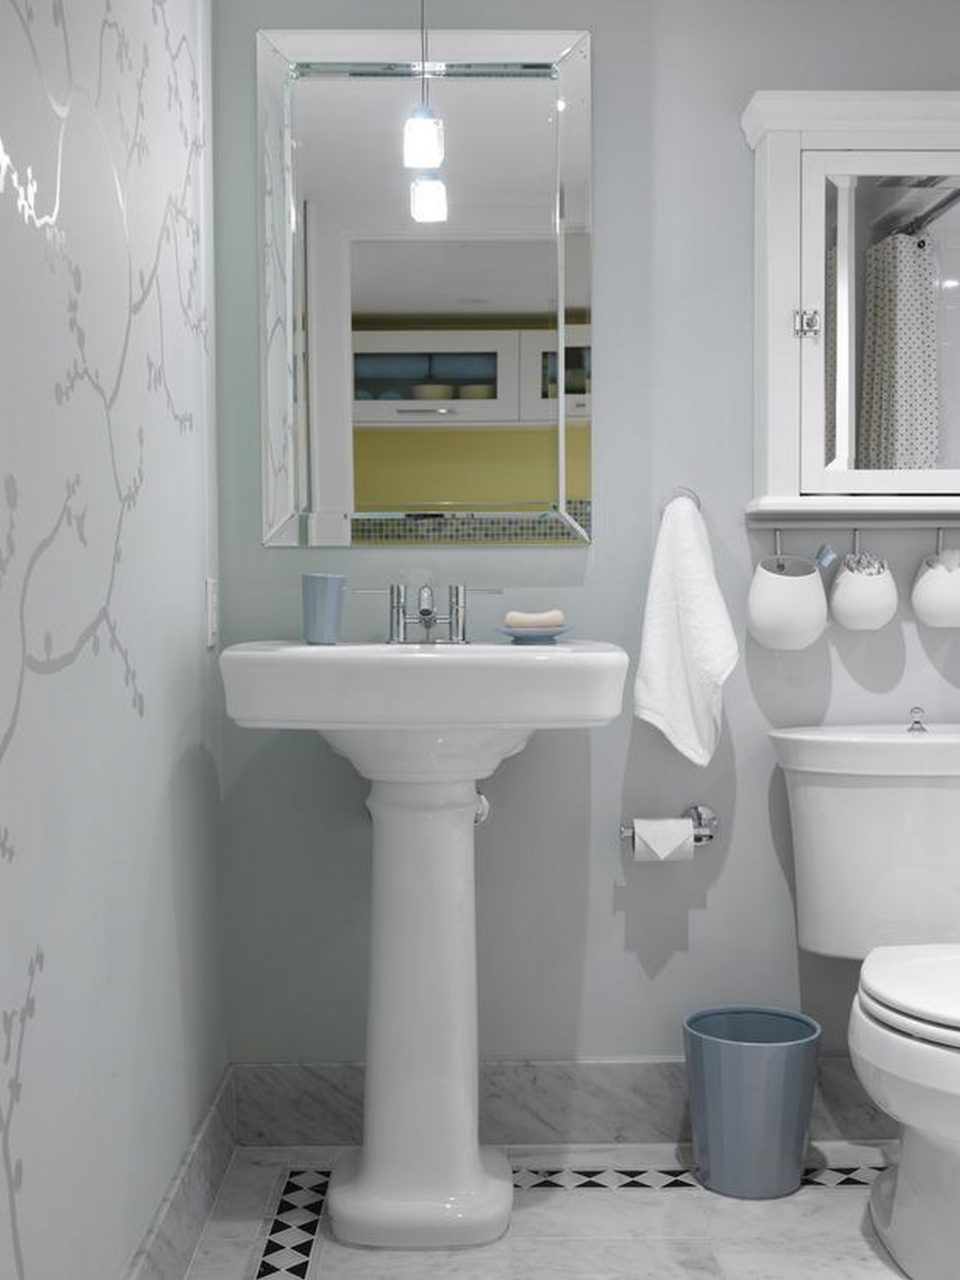 Creative Of Maximizing Space In A Small Bathroom Related To Home